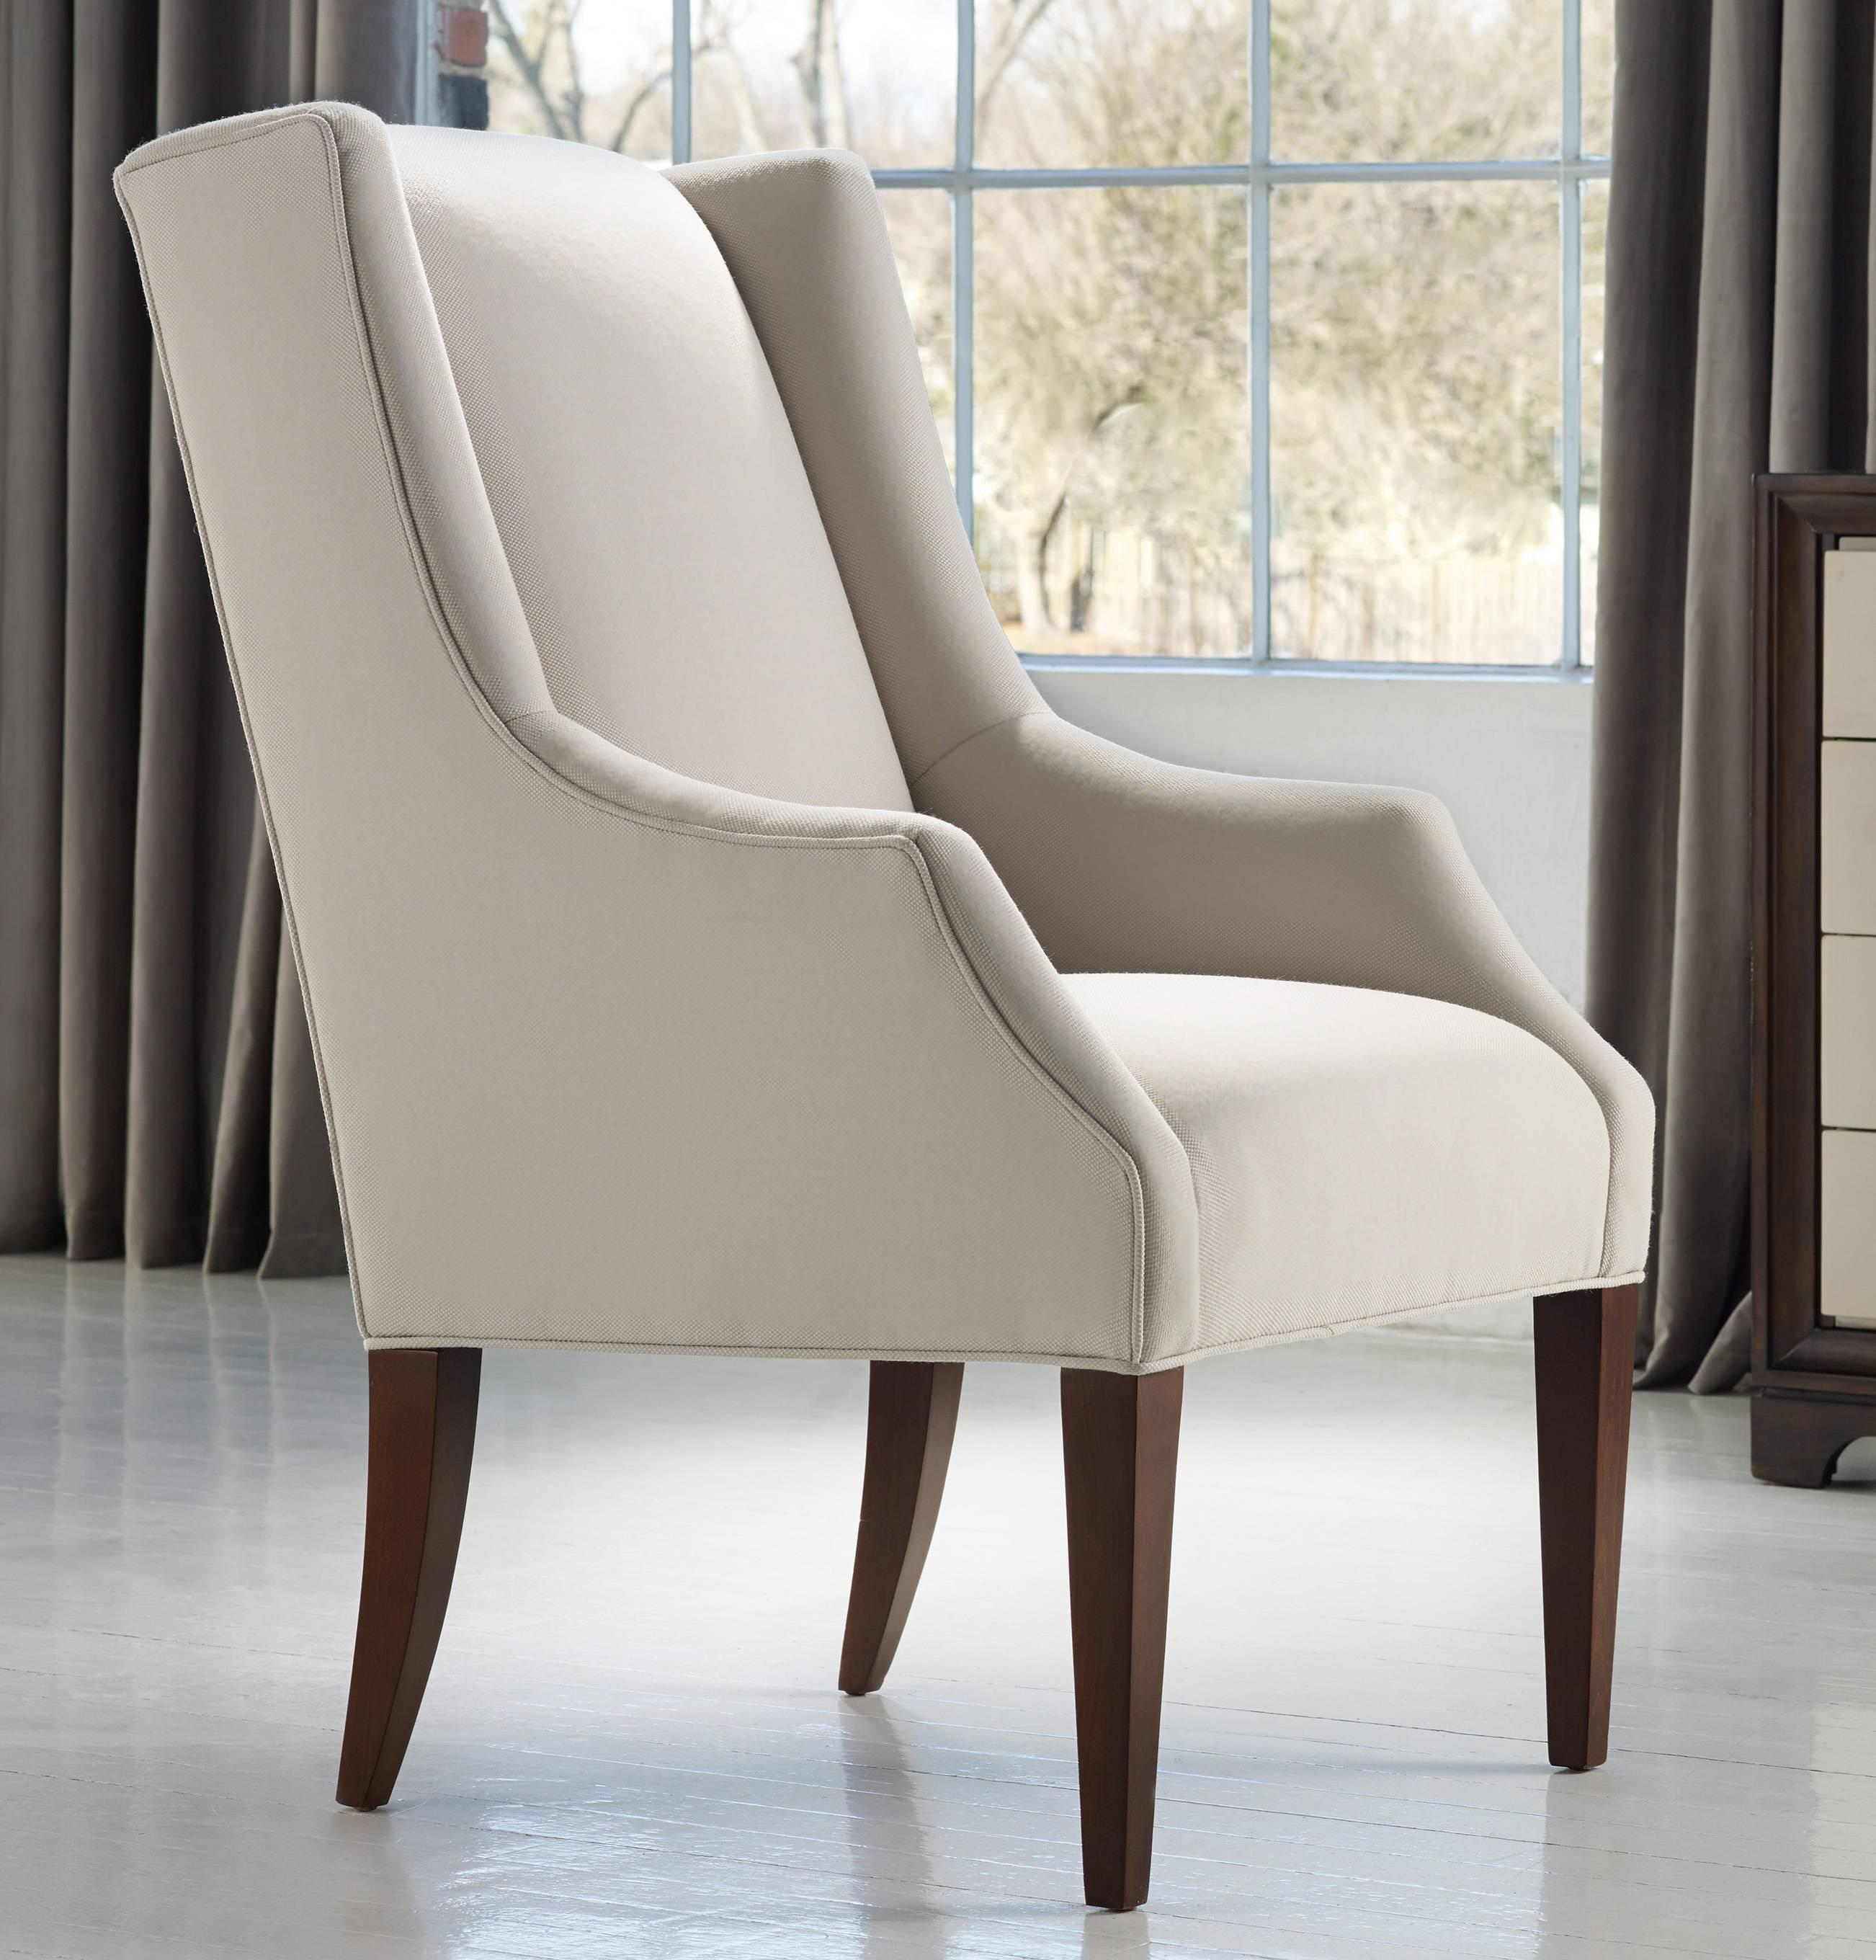 gaston dining chair  contract furniture